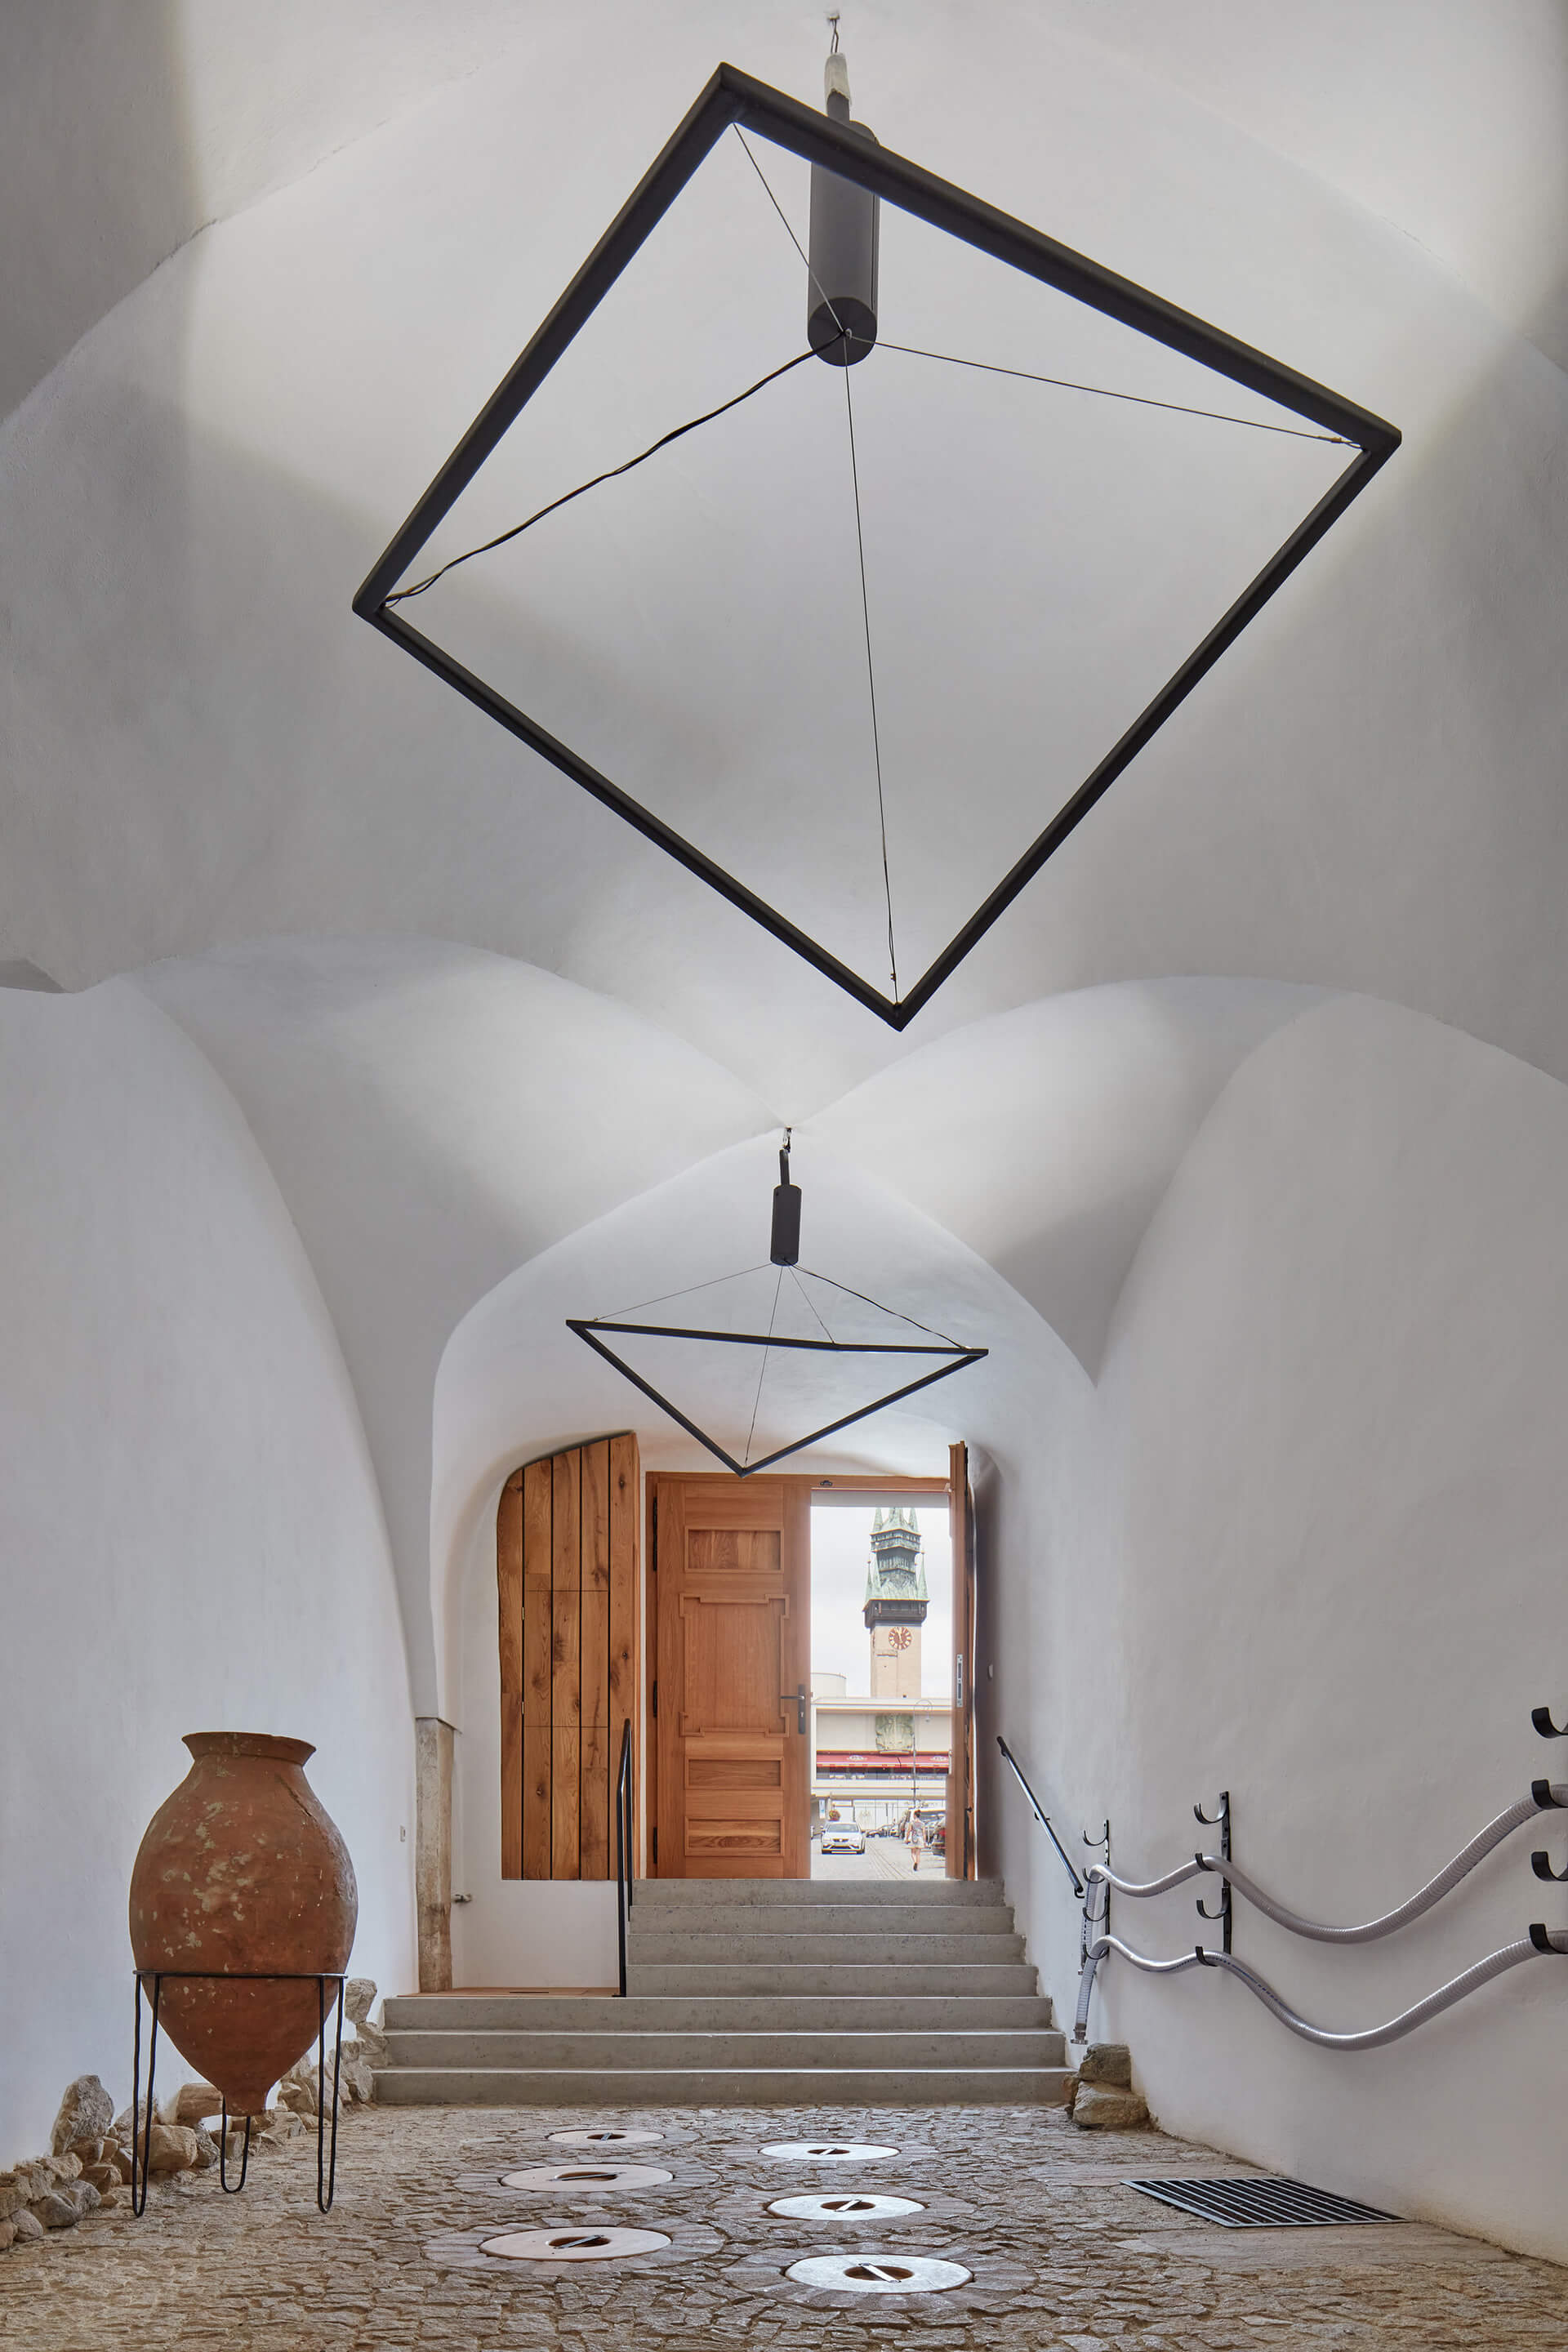 The entrance passage with the floor embedded ceramic wine vessels |Winery Nešetřil by ORA | STIRworld